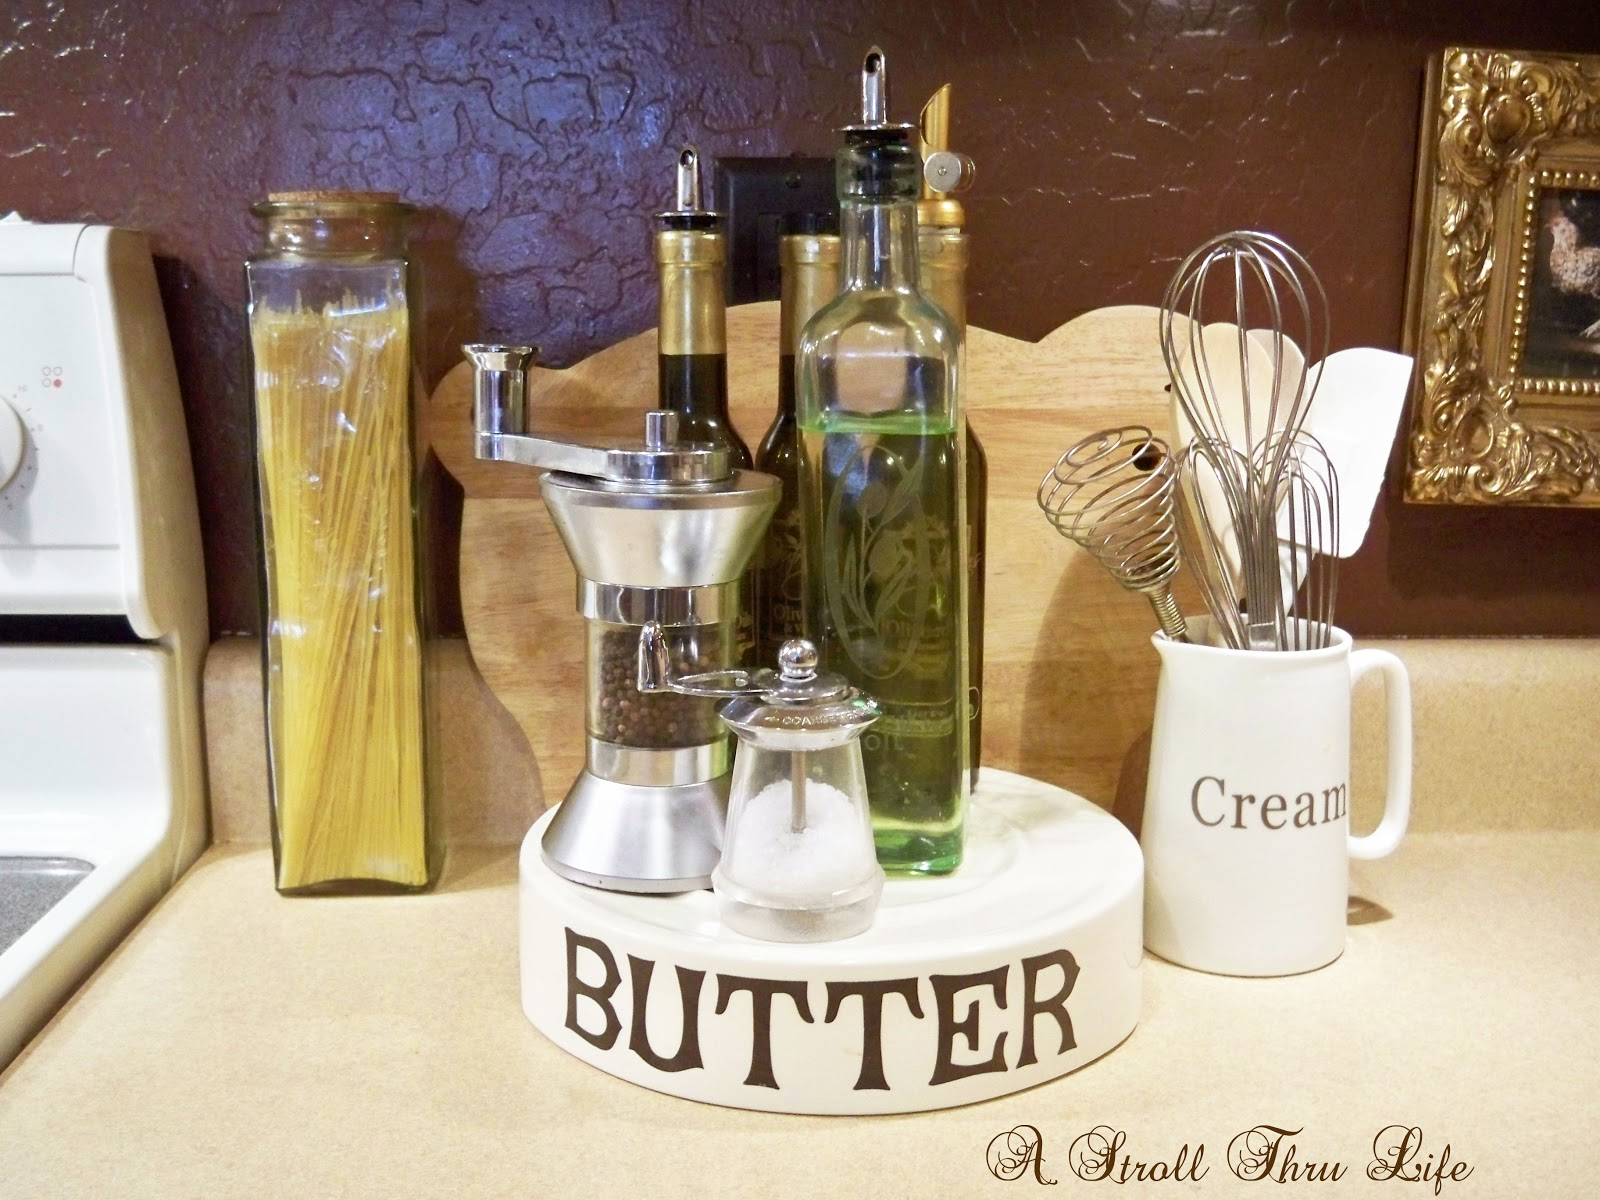 Use creative accessories in the kitchen